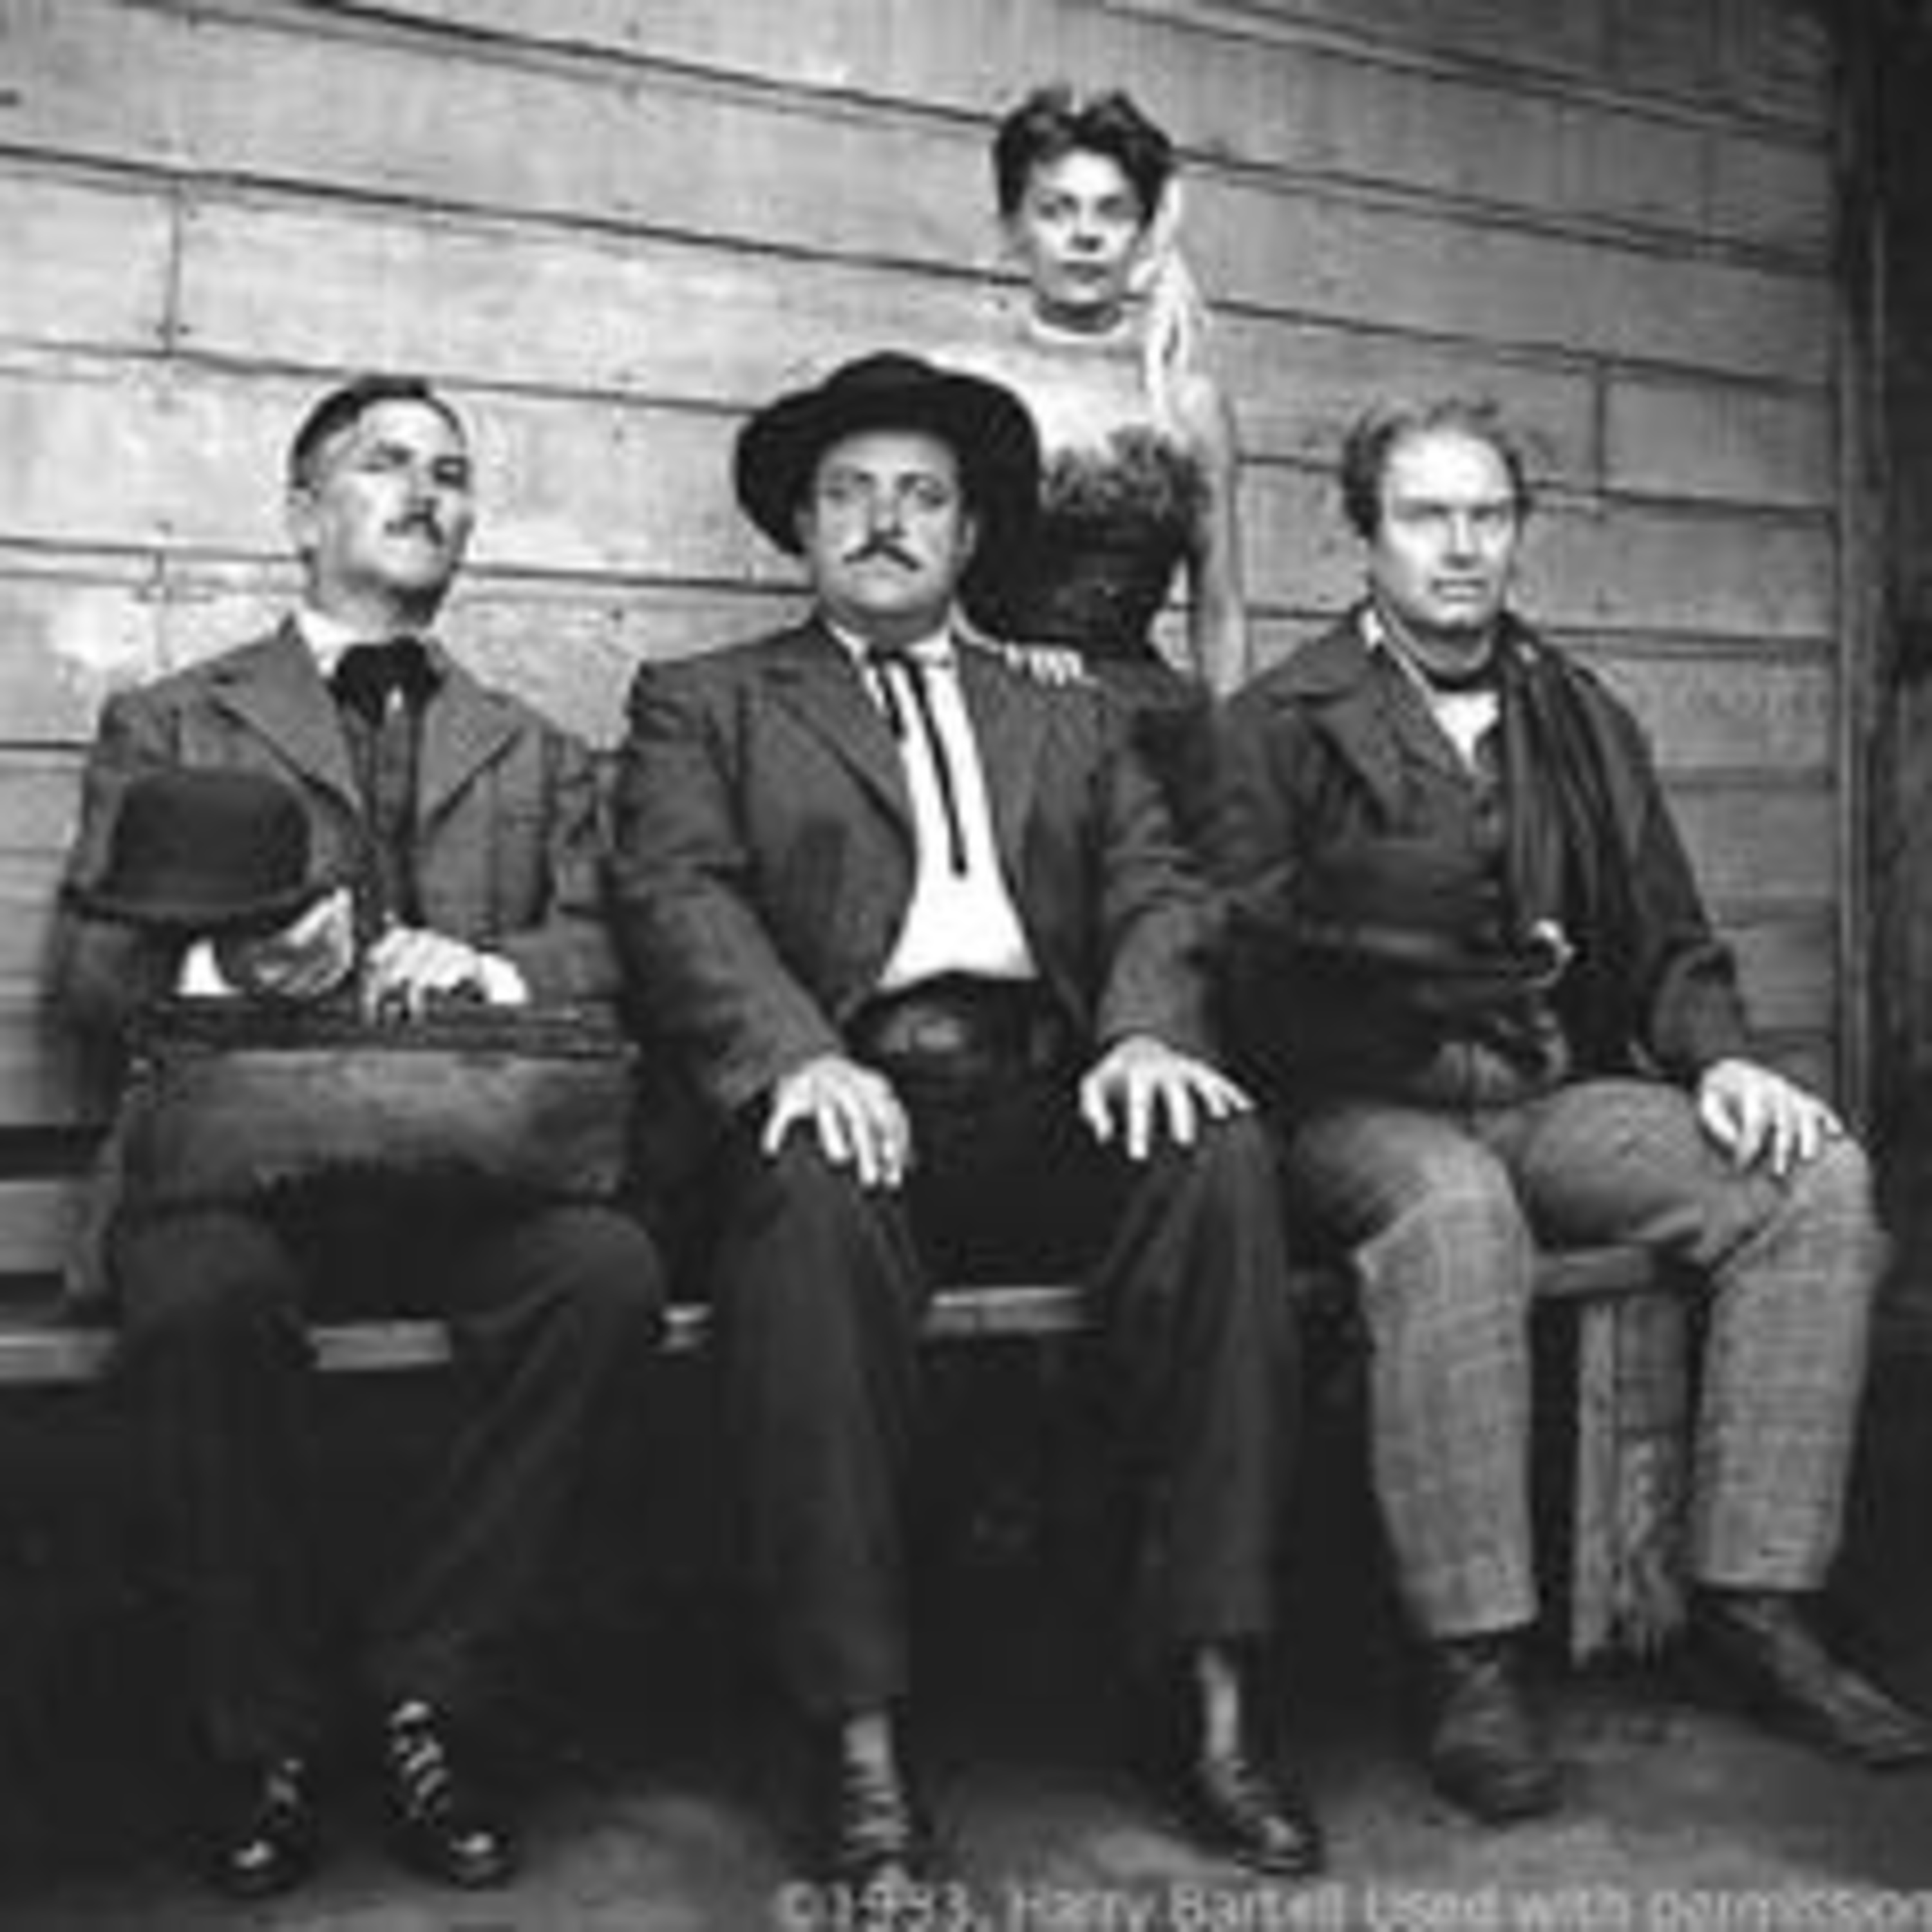 The Gunsmoke Podcast - Murder Warrant - Cara - Radio's Last Great Dramatic Series - Episodes 105 and 106